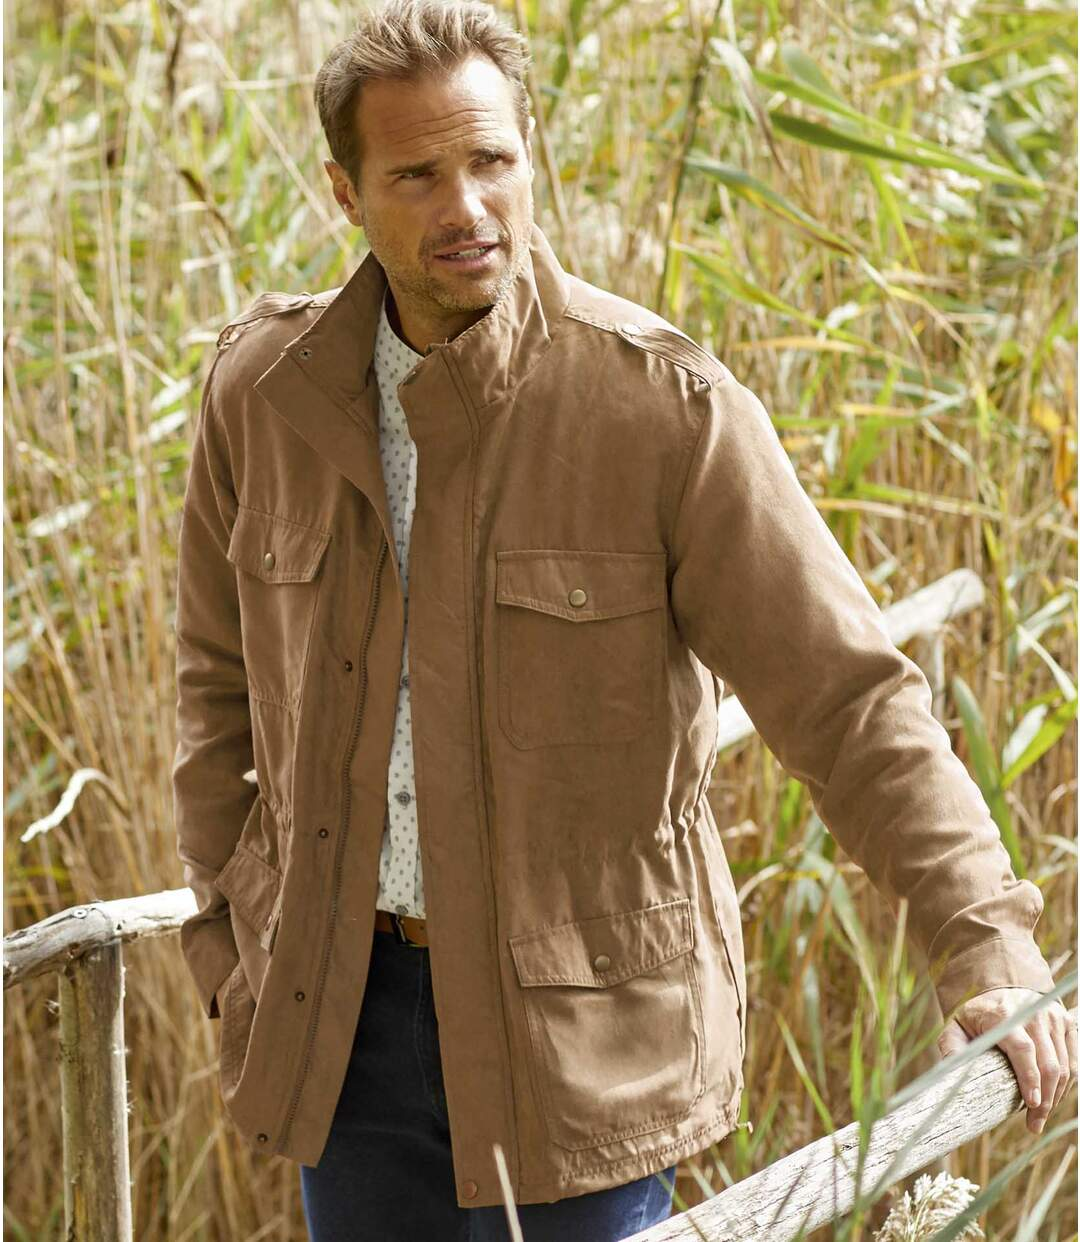 Die Safari-Jacke in Wildlederoptik